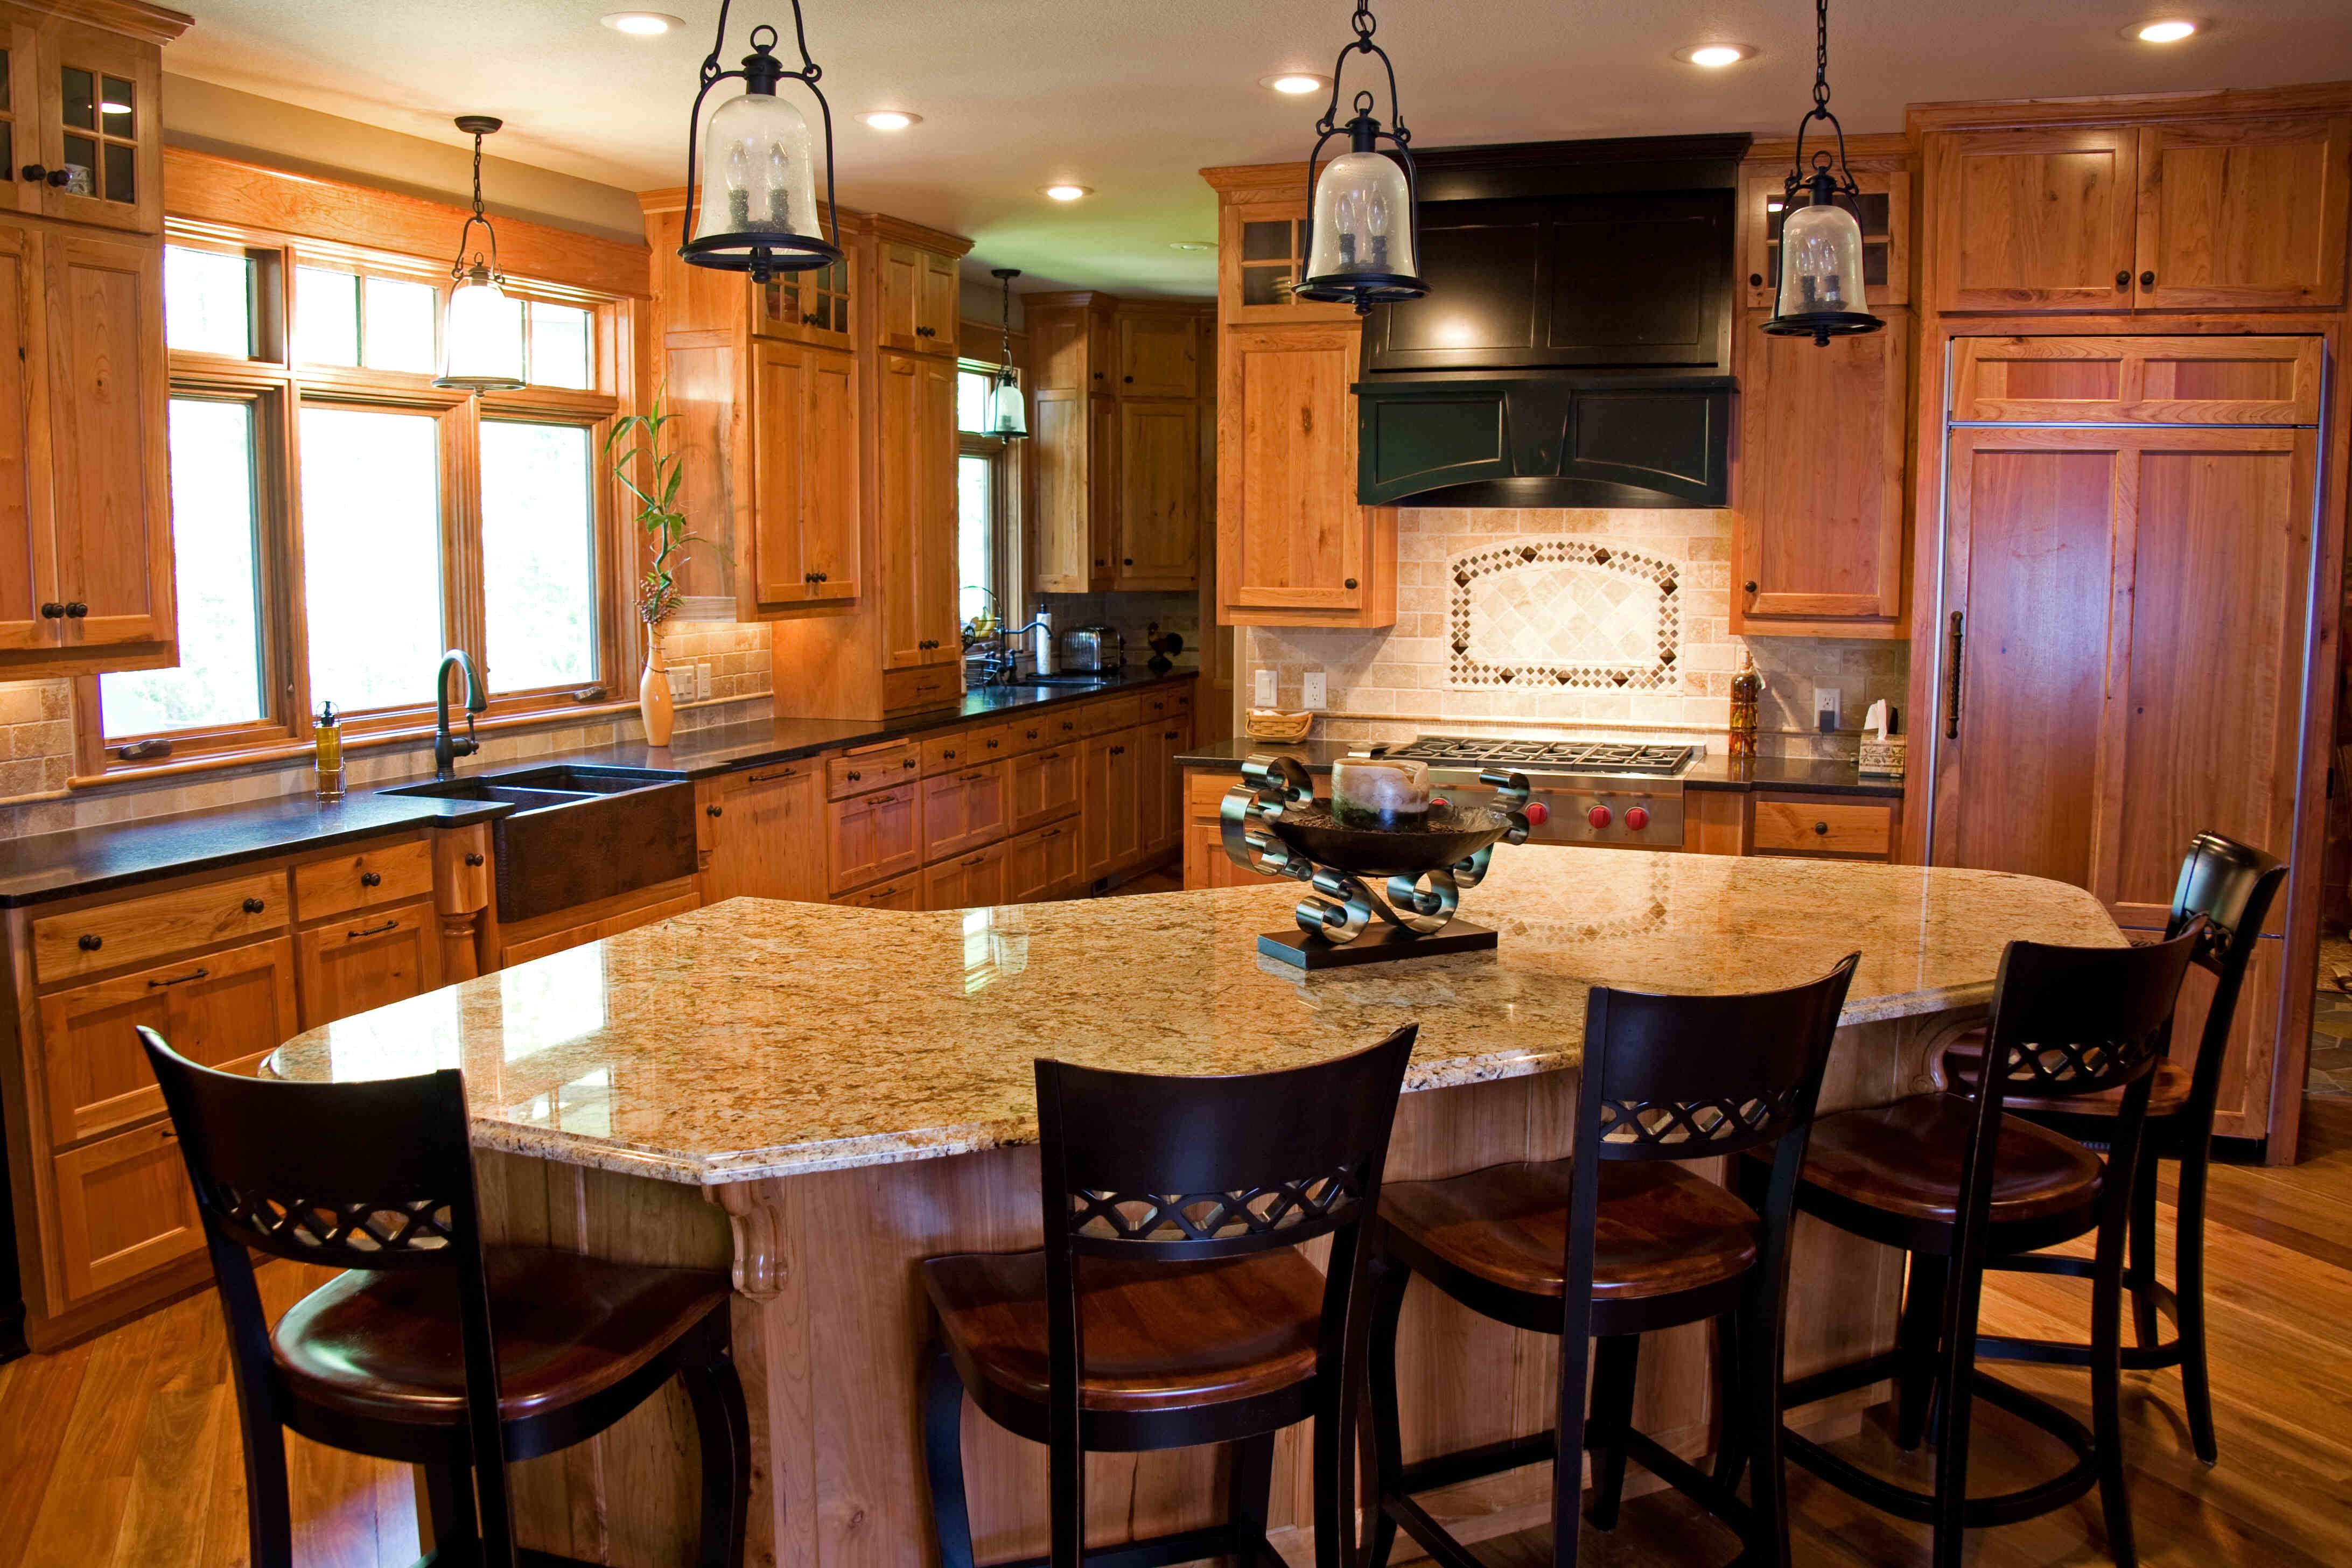 Practical Kitchen Designs image of practical kitchen remodeling ideas that you should know